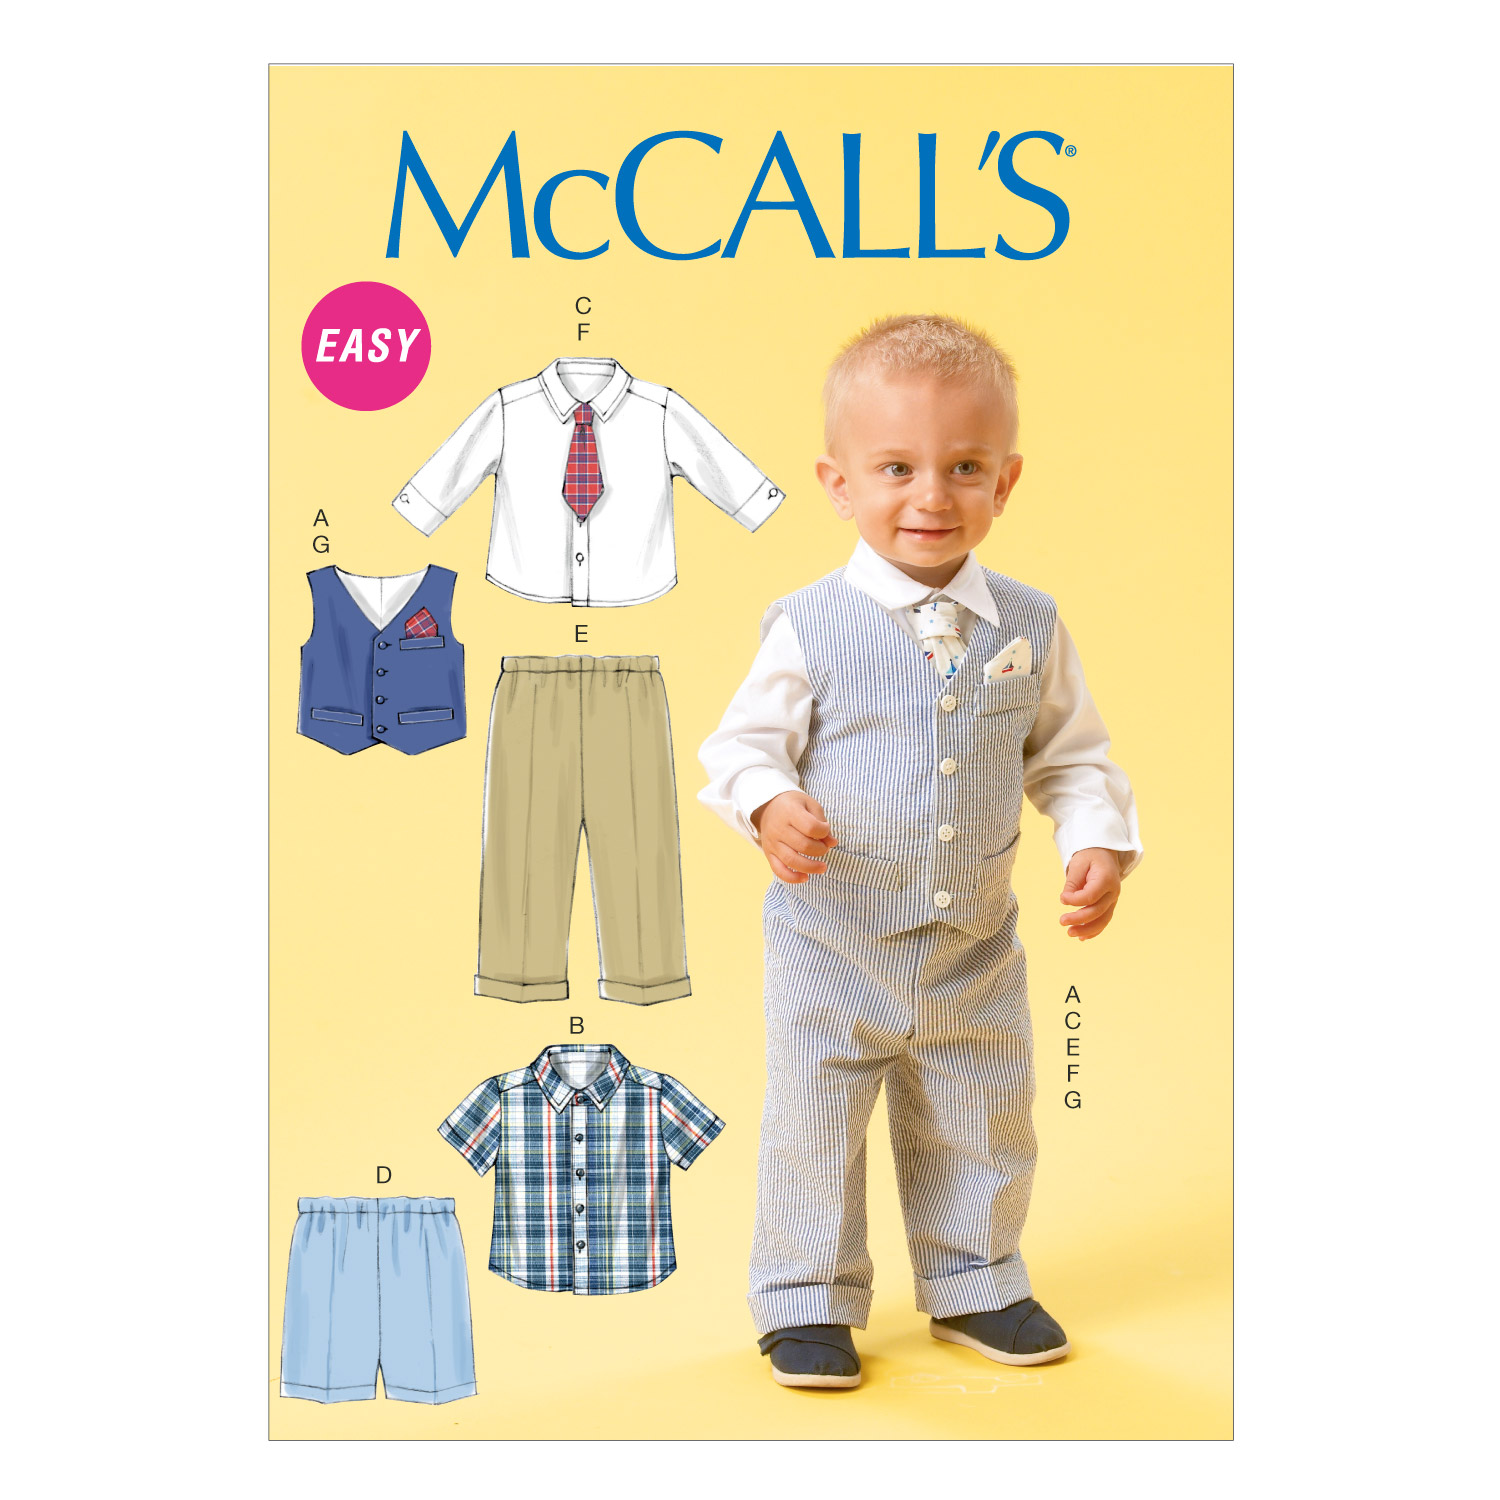 1940s Children's Clothing: Girls, Boys, Baby, Toddler McCalls Infants Vest Shirt Shorts Pants Tie and Pocket Square Pattern M6873 Size YA5 $8.37 AT vintagedancer.com